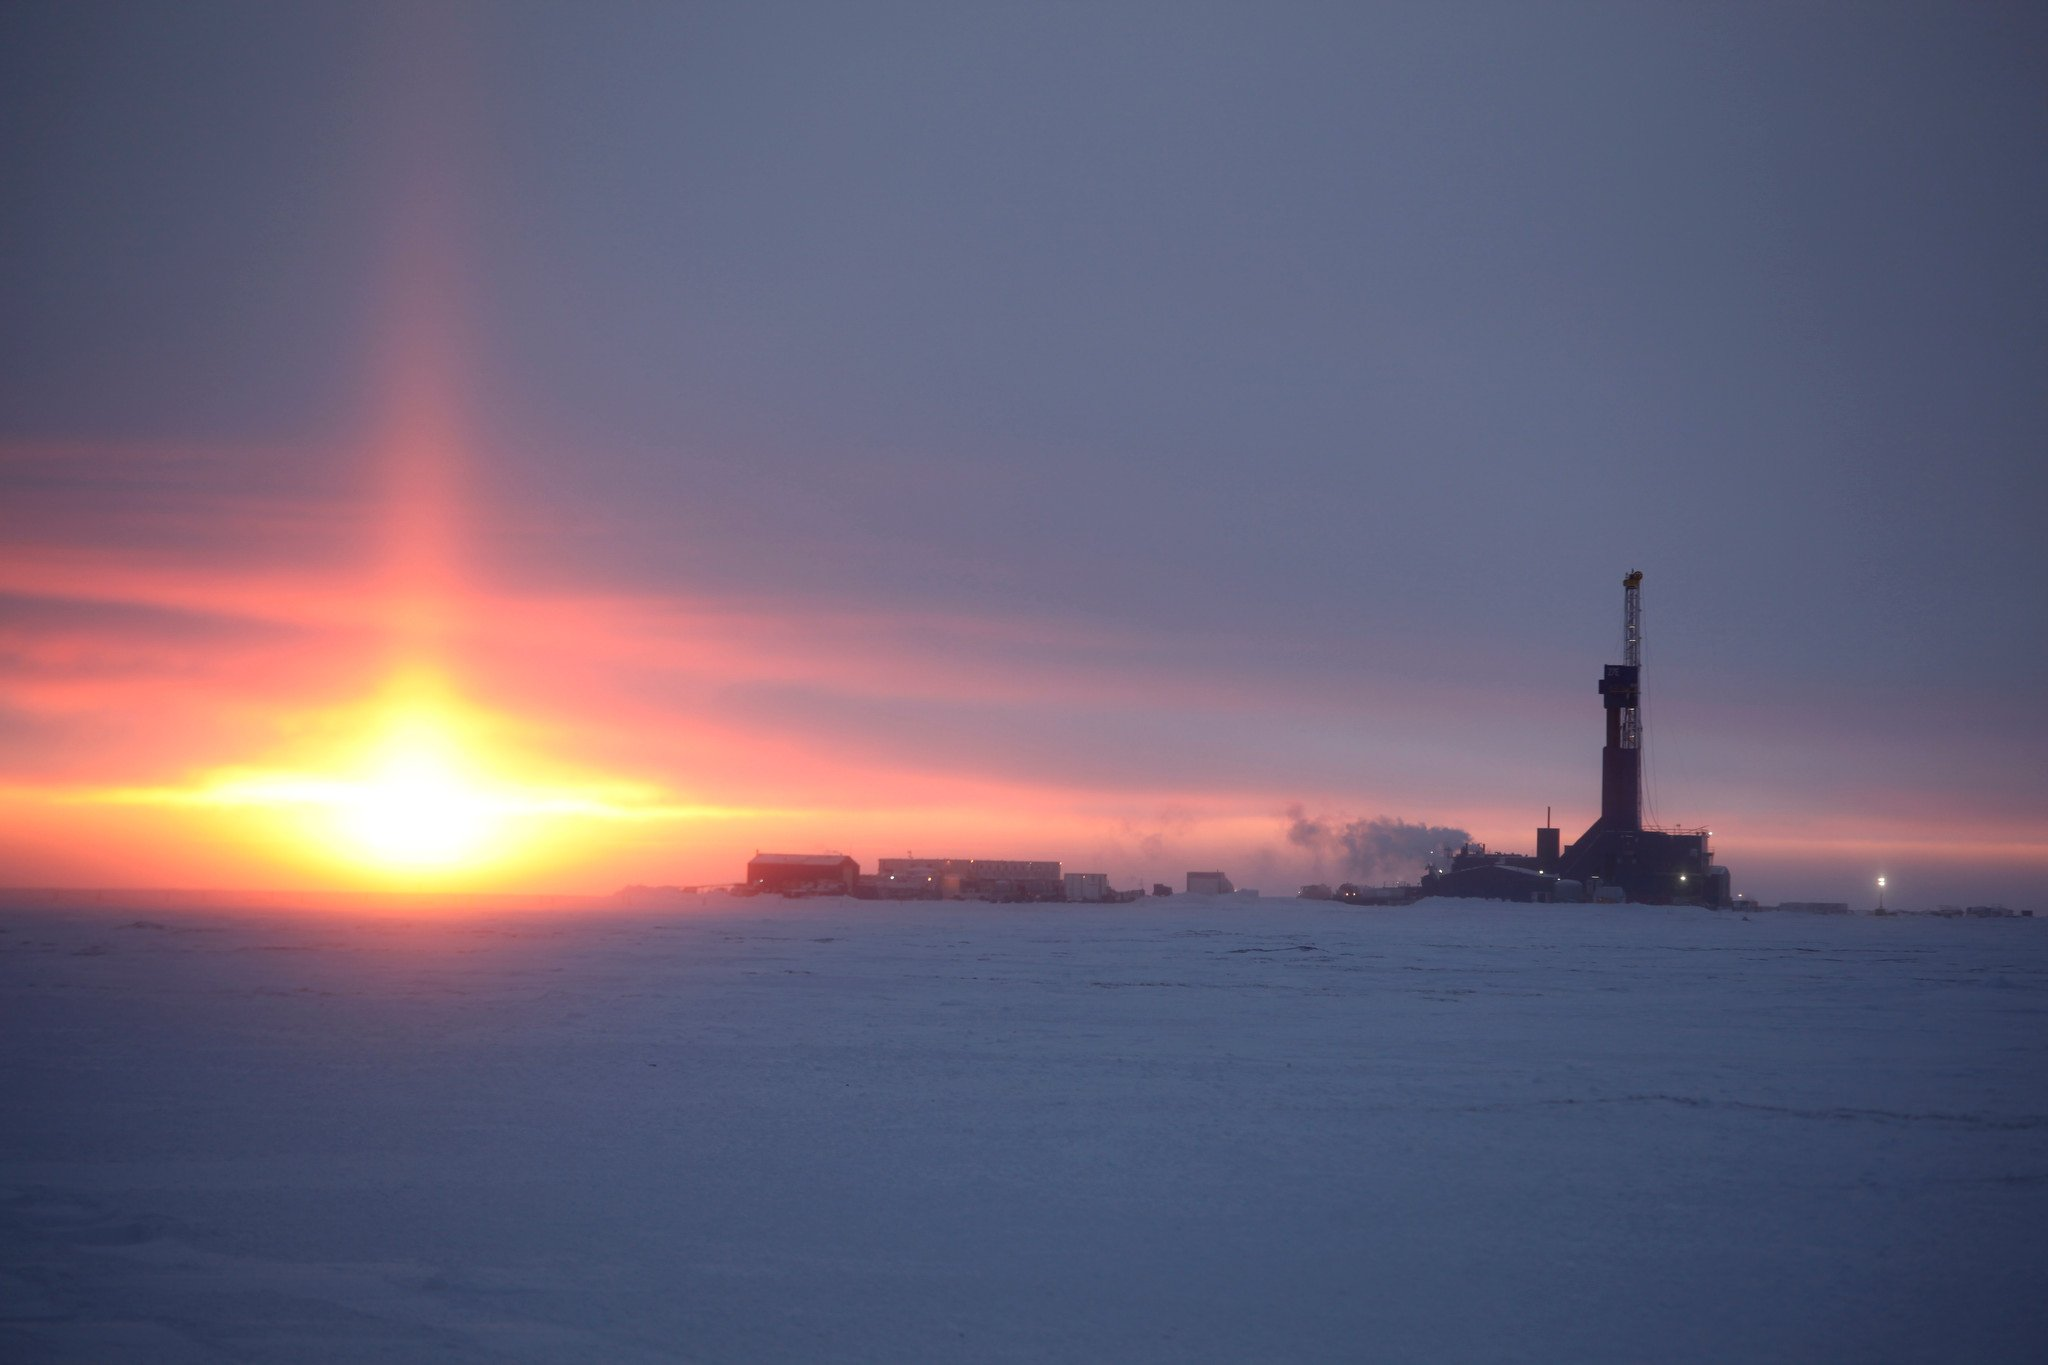 Caelus claims offshore Arctic oil discovery that could rank among Alaska's biggest ever